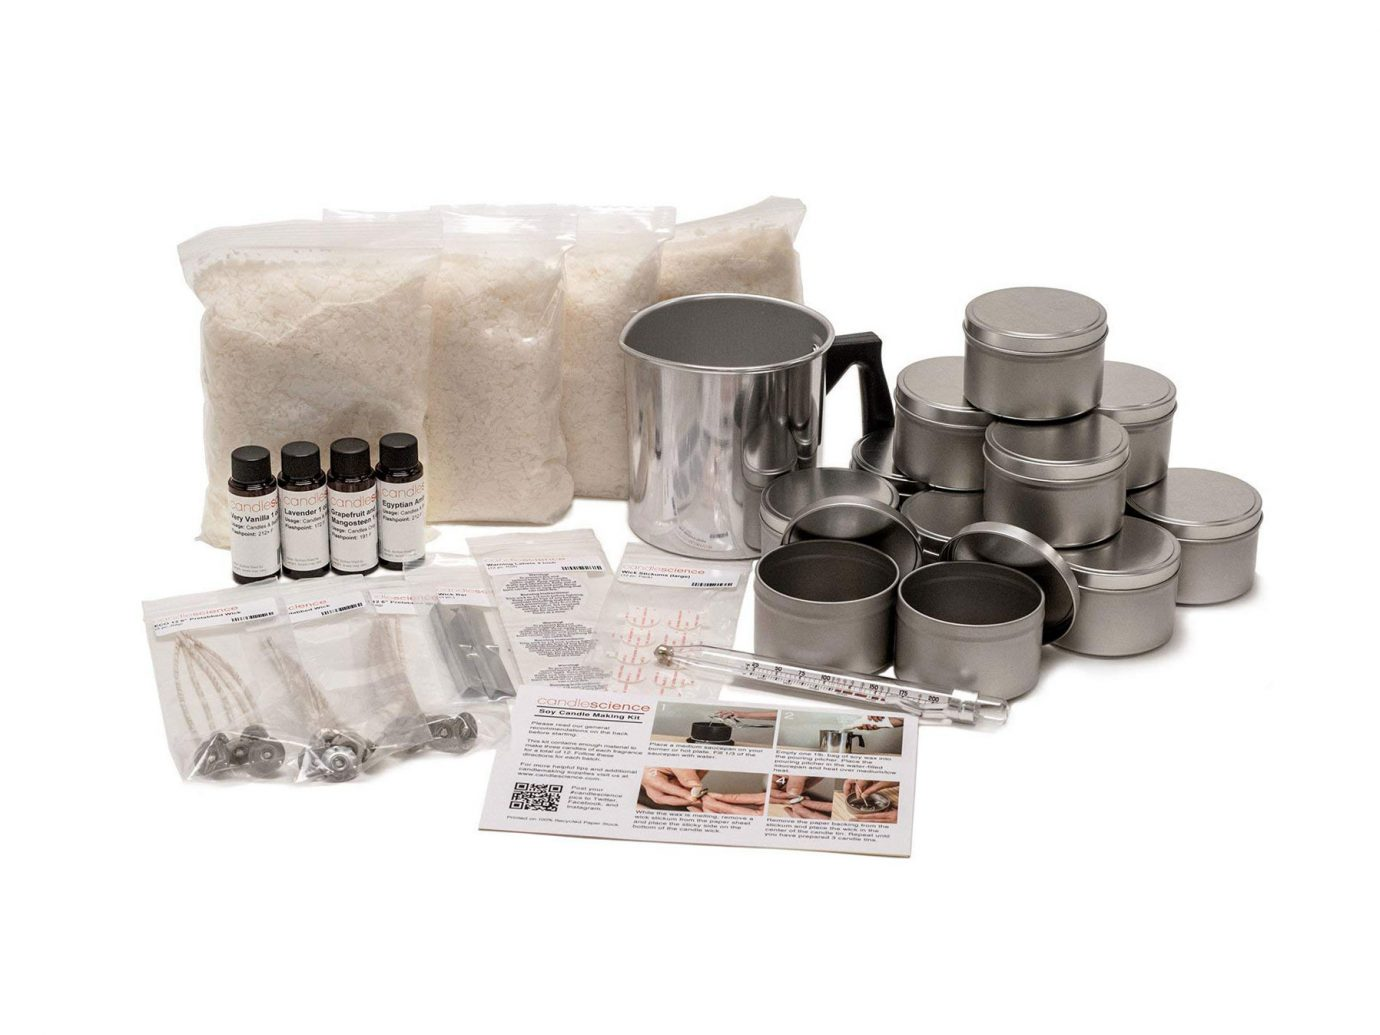 CandleScience Soy Candle Making Starter Kit